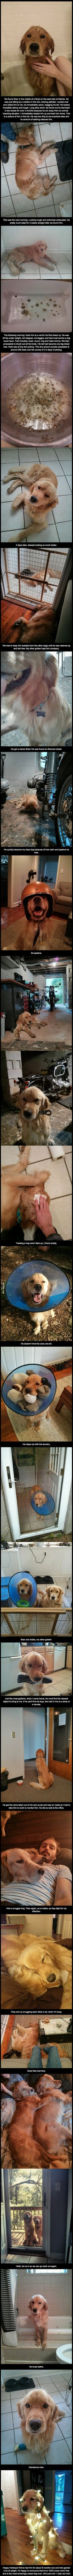 Love reading things like this! Dogs are the best!: Sweet Stories, Golden Retrievers, Faith In Humanity Restored, My Heart, Puppy, Animal